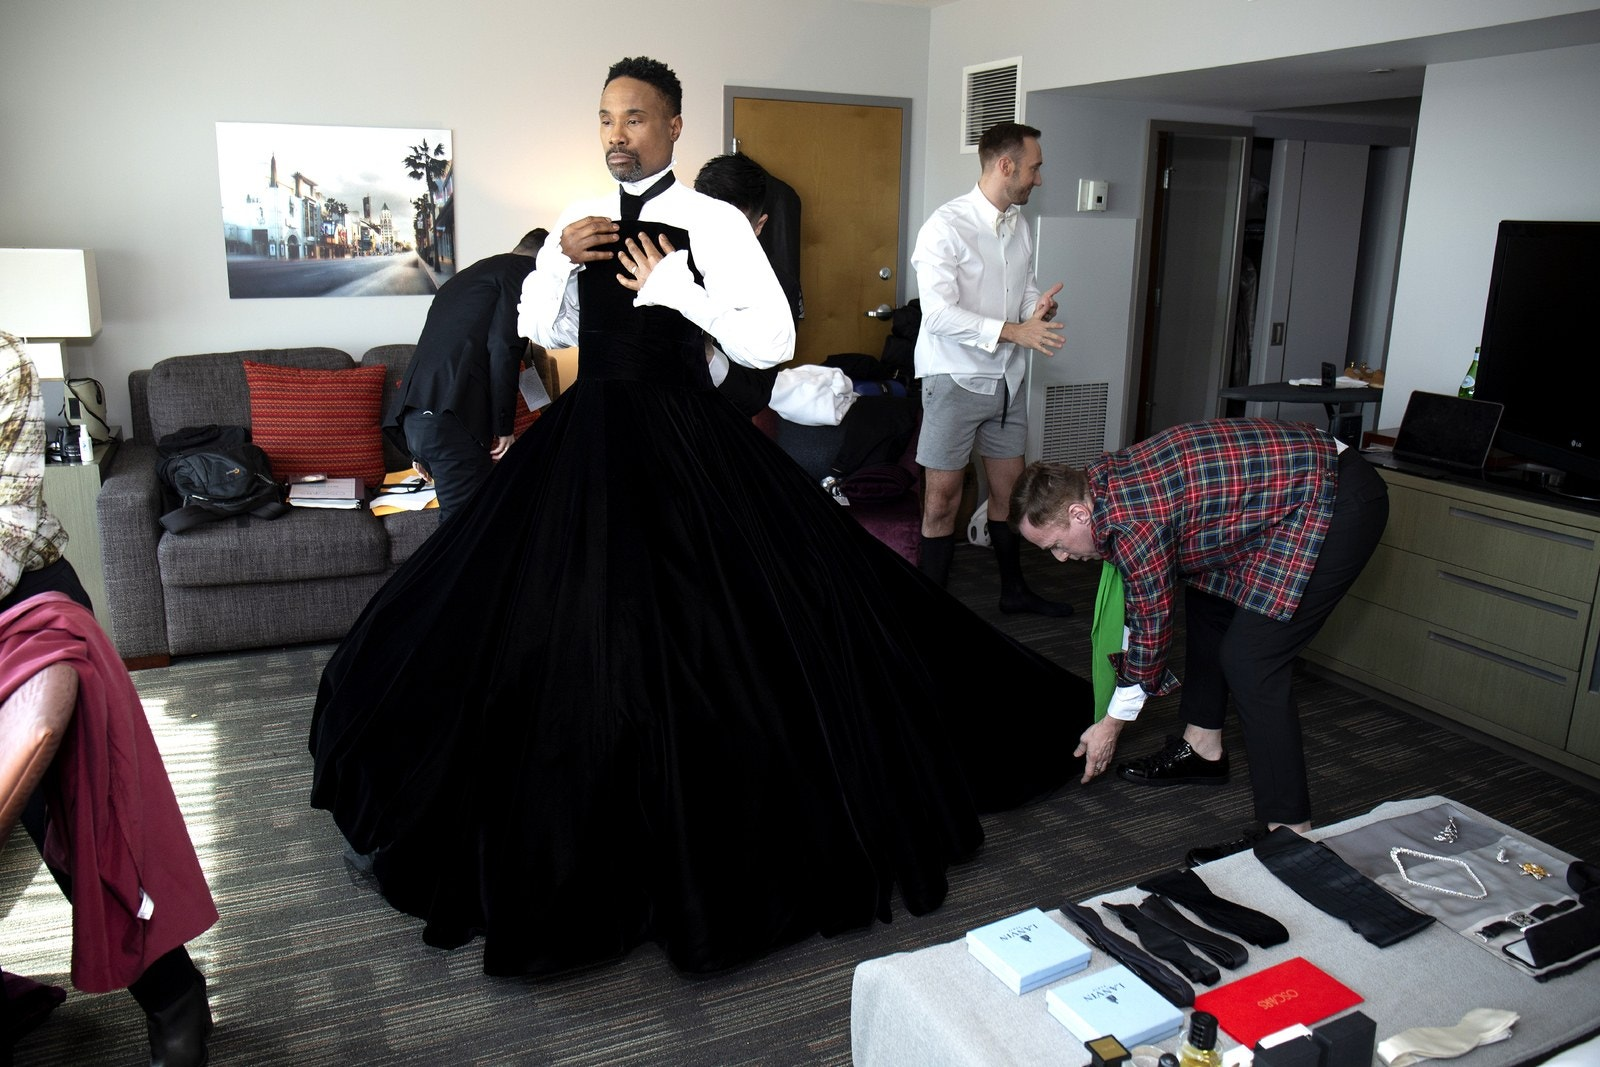 Billy Porter prepares for the 91st Academy Awards at Lowes Hollywood Hotel on February 24 2019 in Hollywood California.